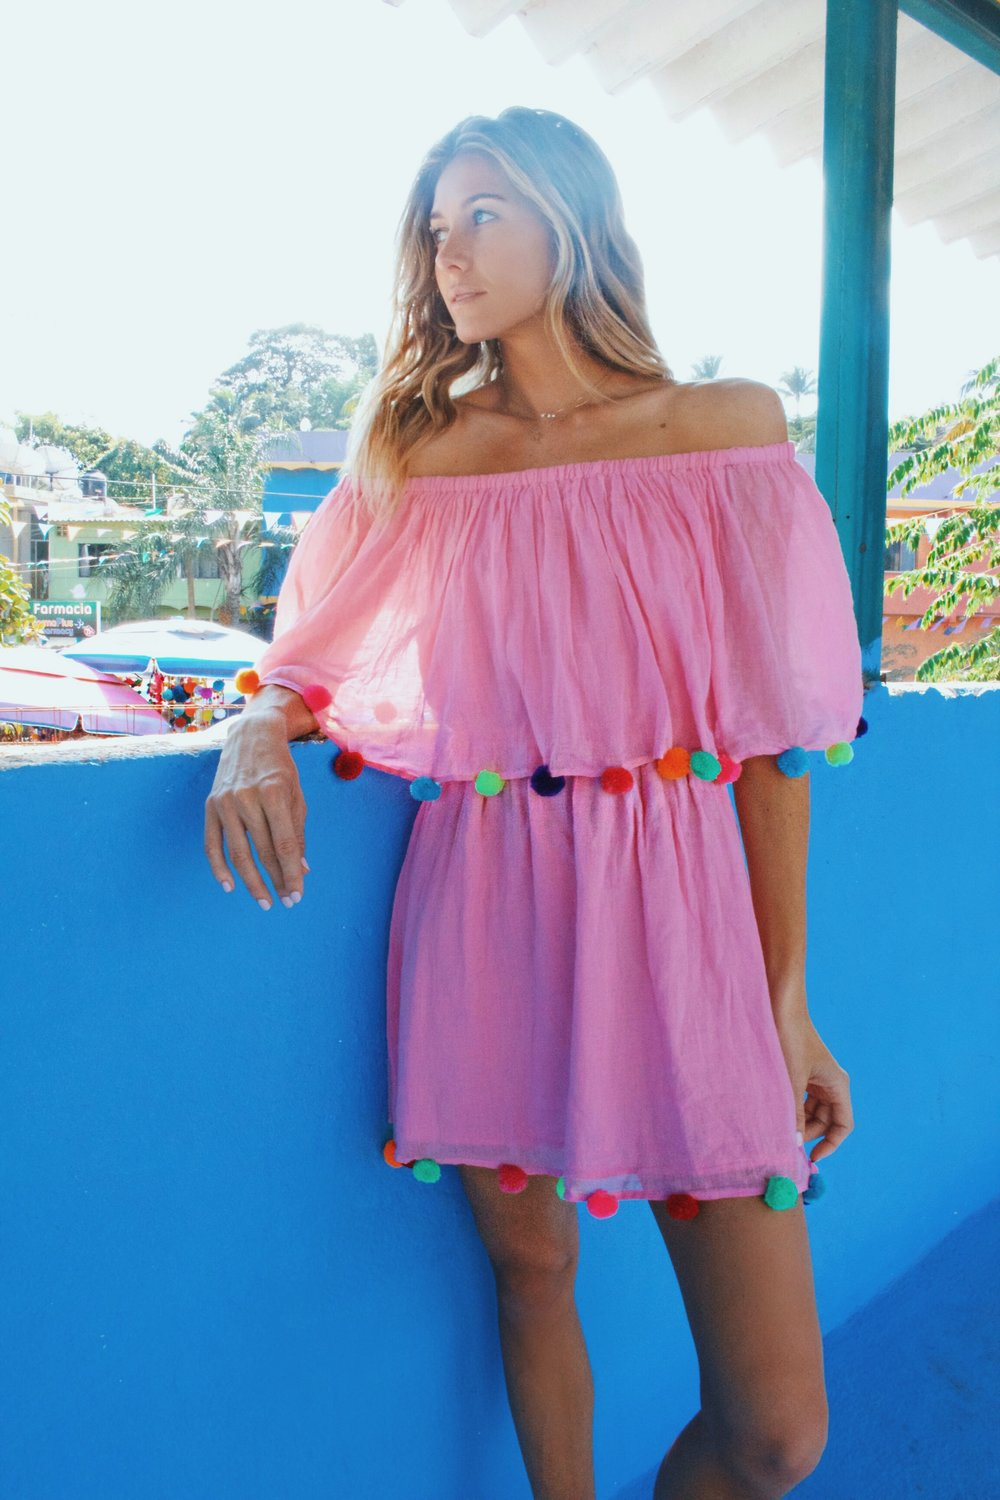 SHOP  PITUSA for this festival dress💕 it also comes in black and white at $88. Her designs are so fun and playful - perfect for vacation with their light weight material, especially in those humid places!